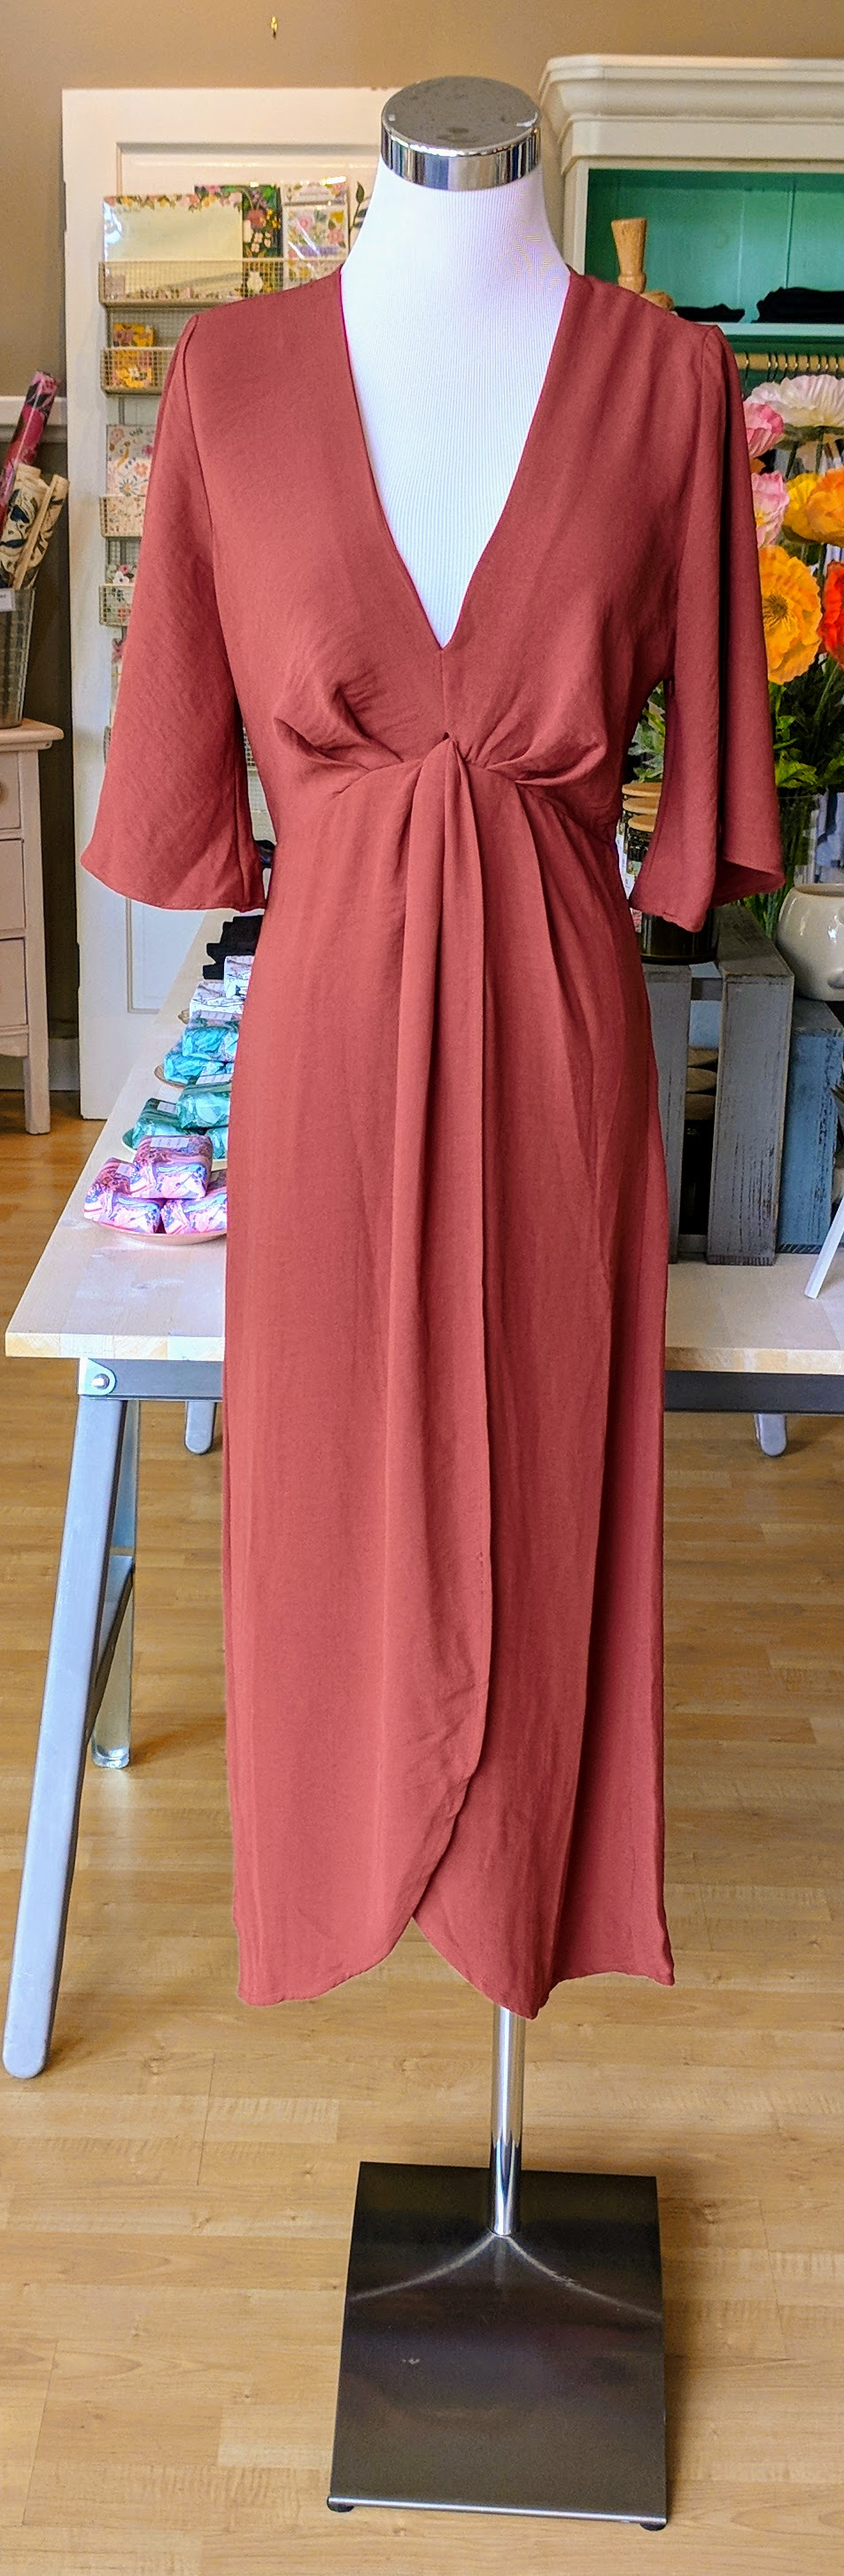 Brick color midi dress with fly away sleeve and knot detail on front.